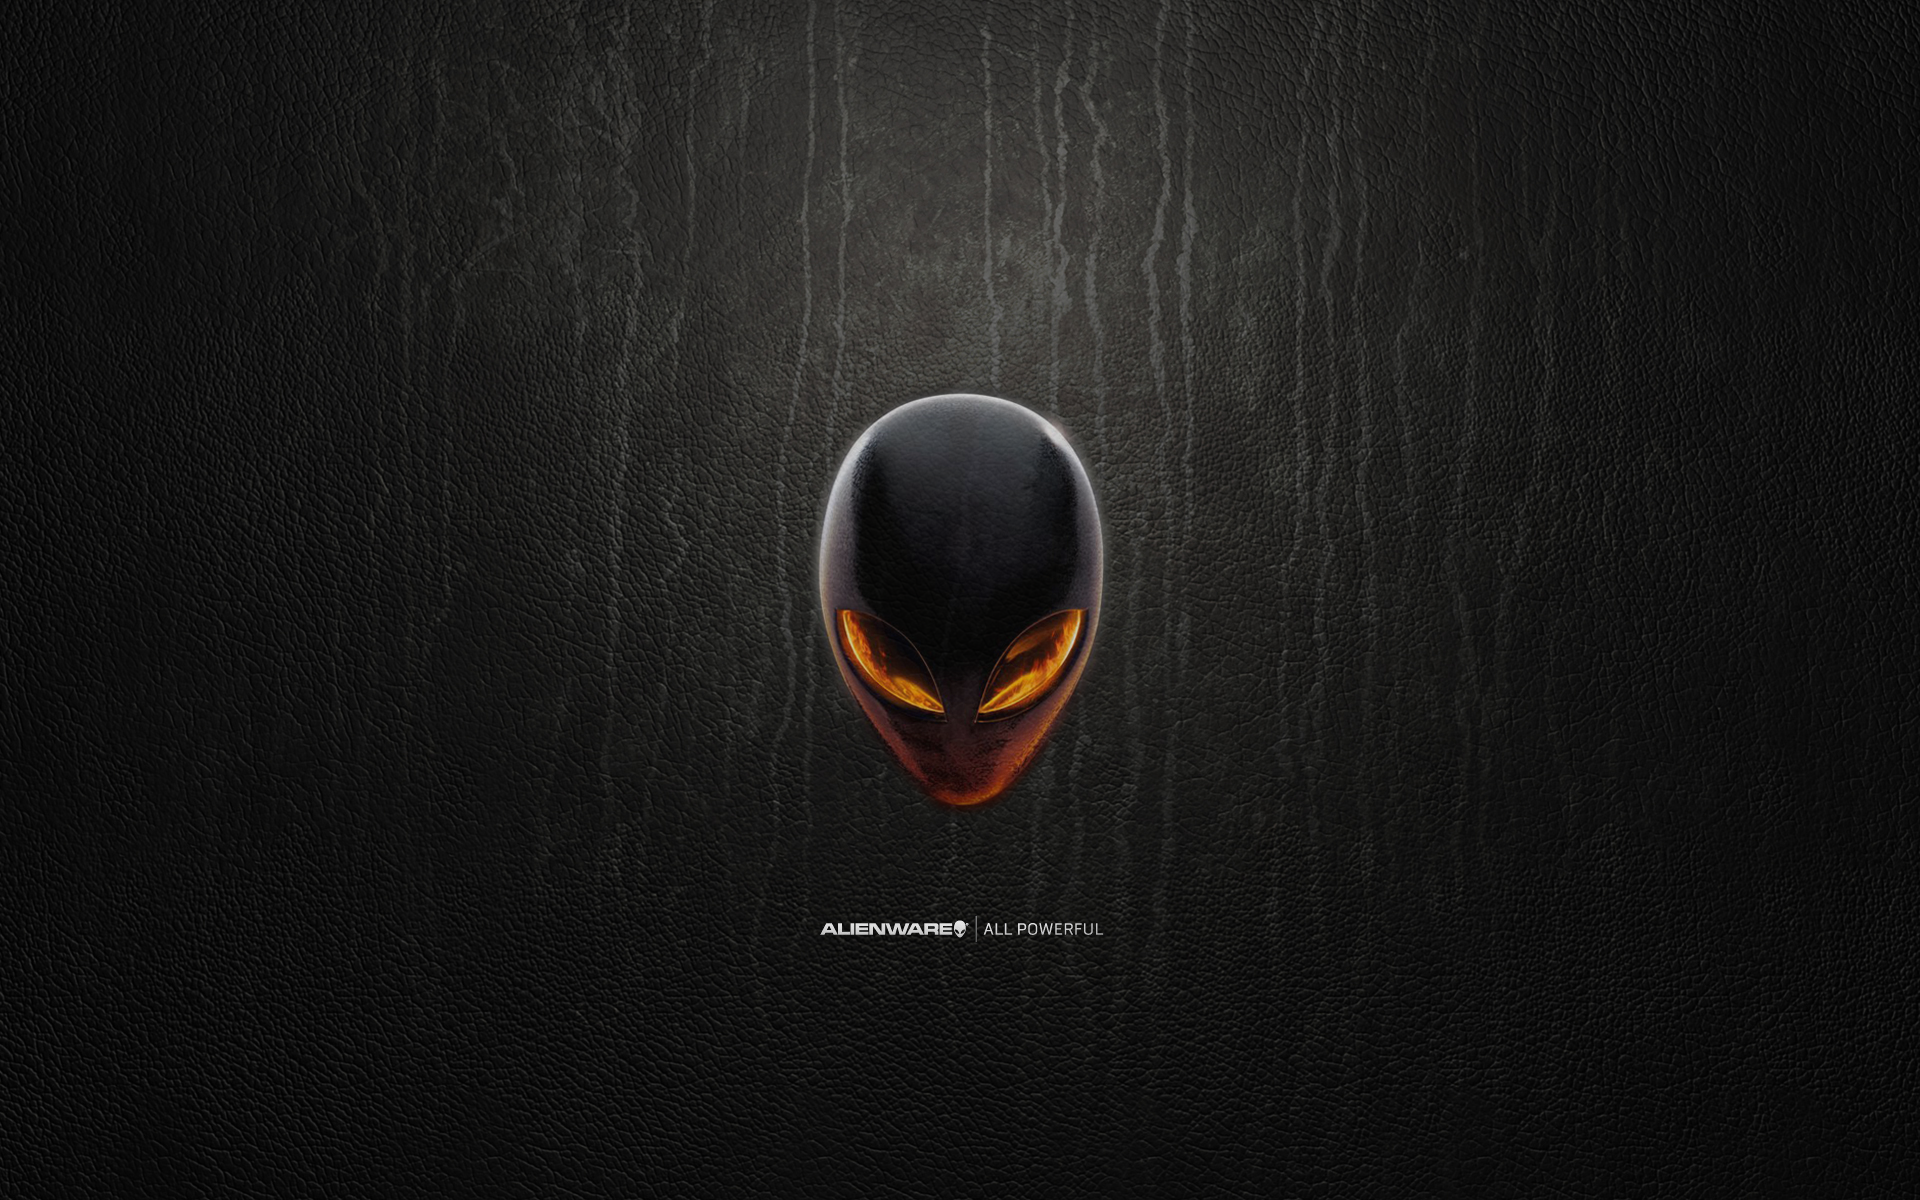 alienware wallpapers | best wallpapers